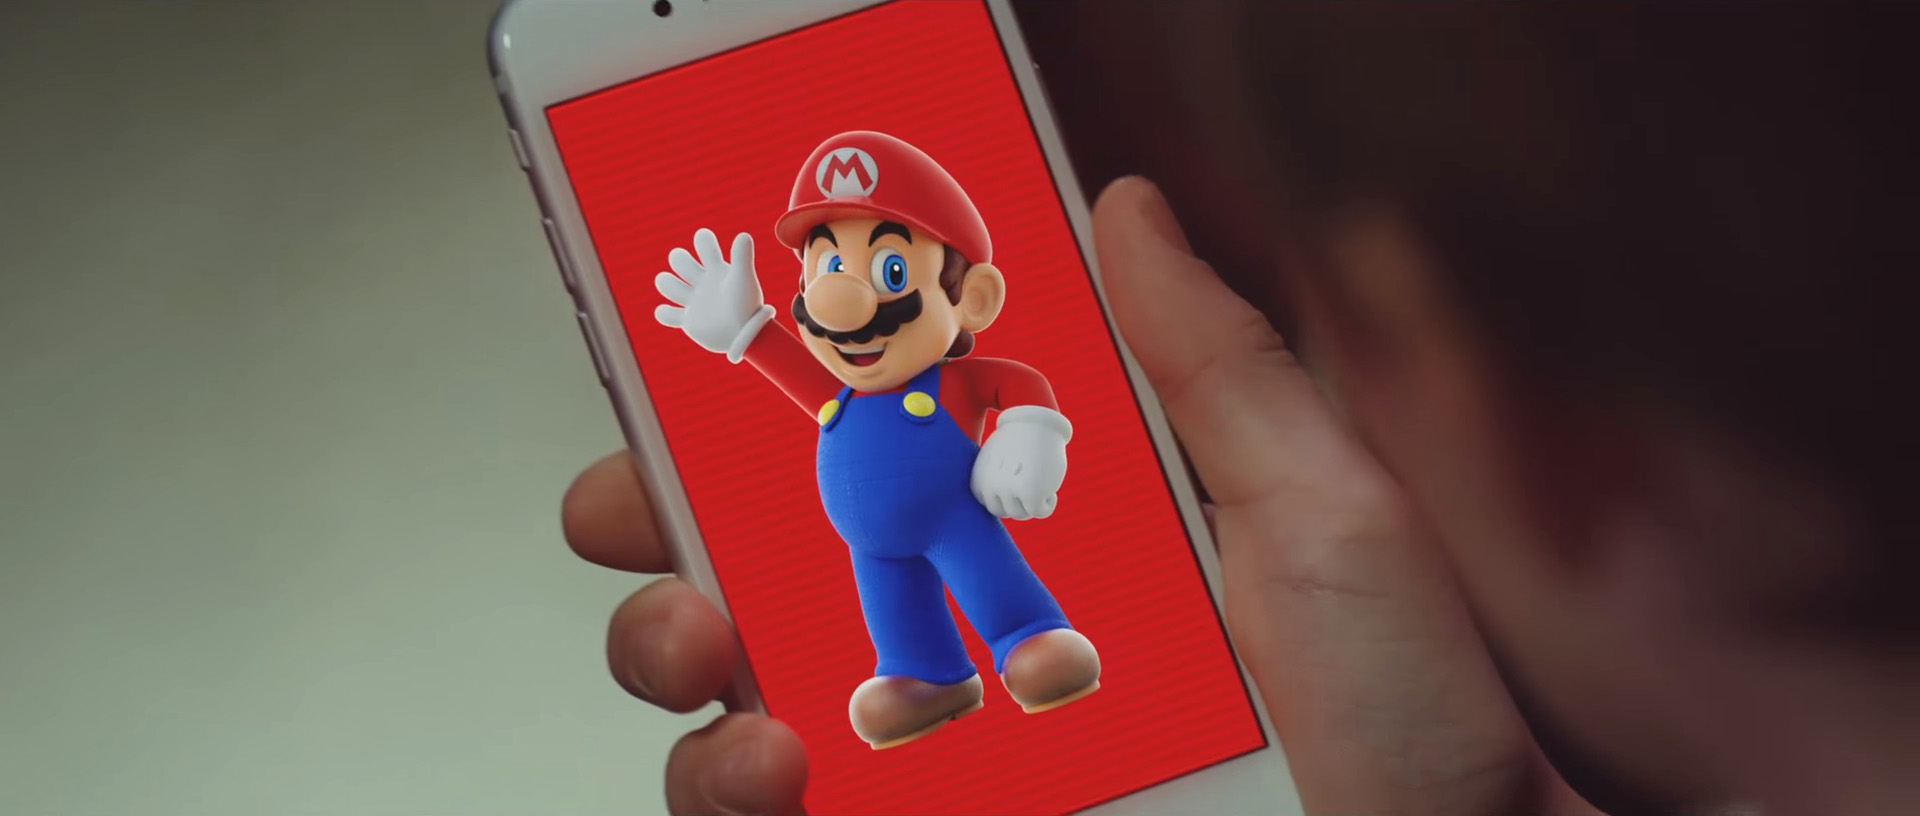 descargar super mario run para android